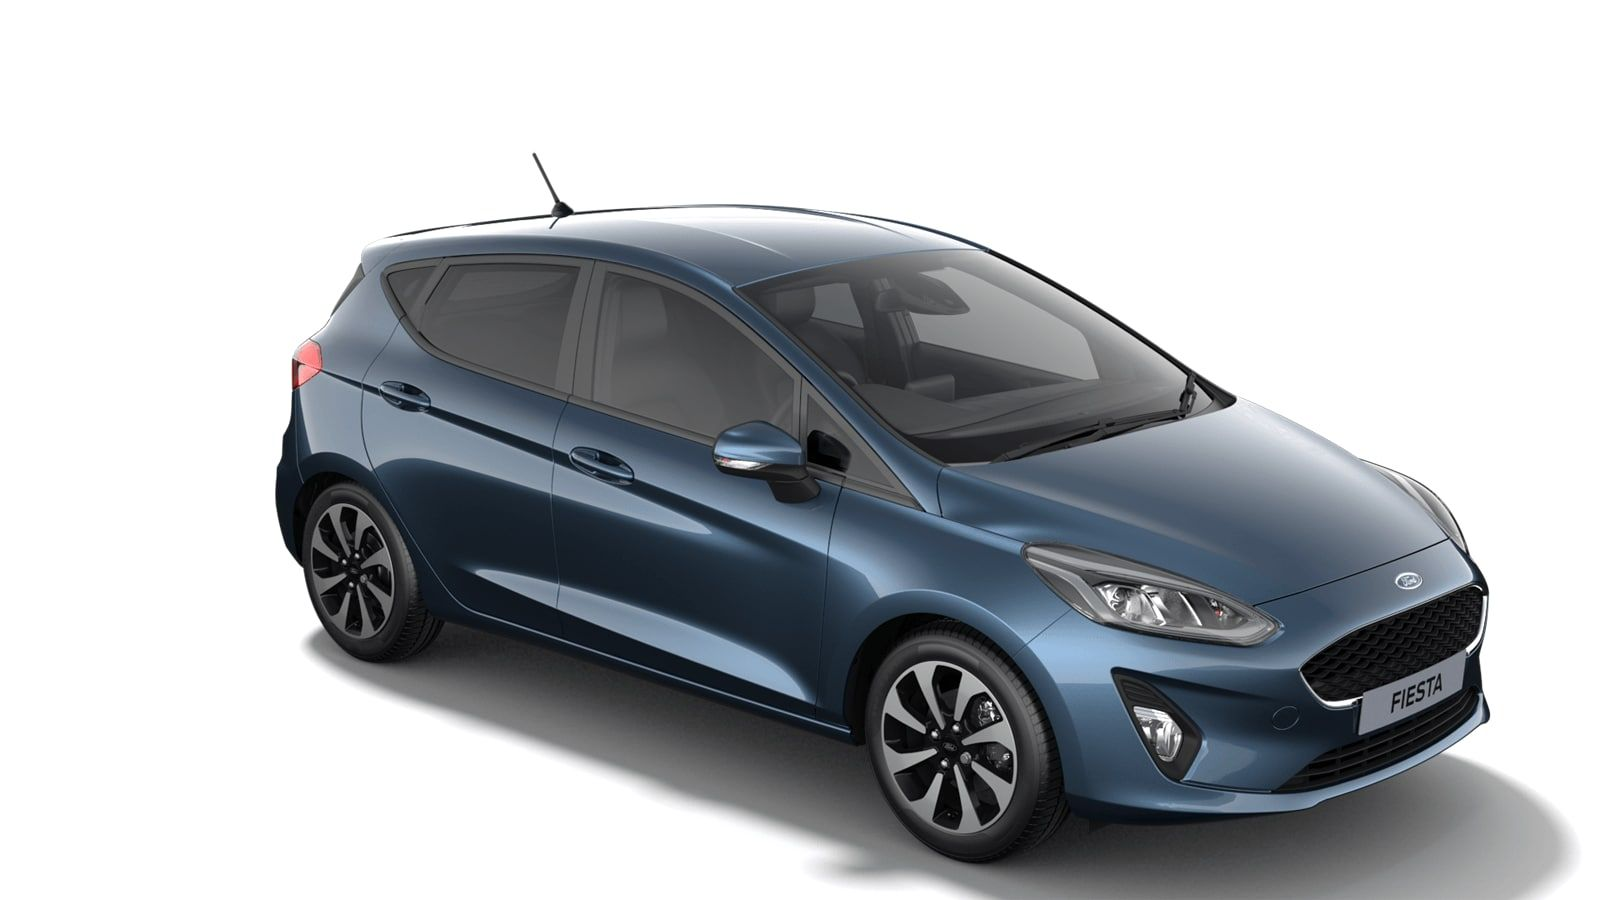 """Nieuw Ford All-new ford fiesta Connected 1.0i EcoBoost 95pk / 70kW M6 - 5d JKC - Metaalkleur """"Chrome Blue"""" 2"""